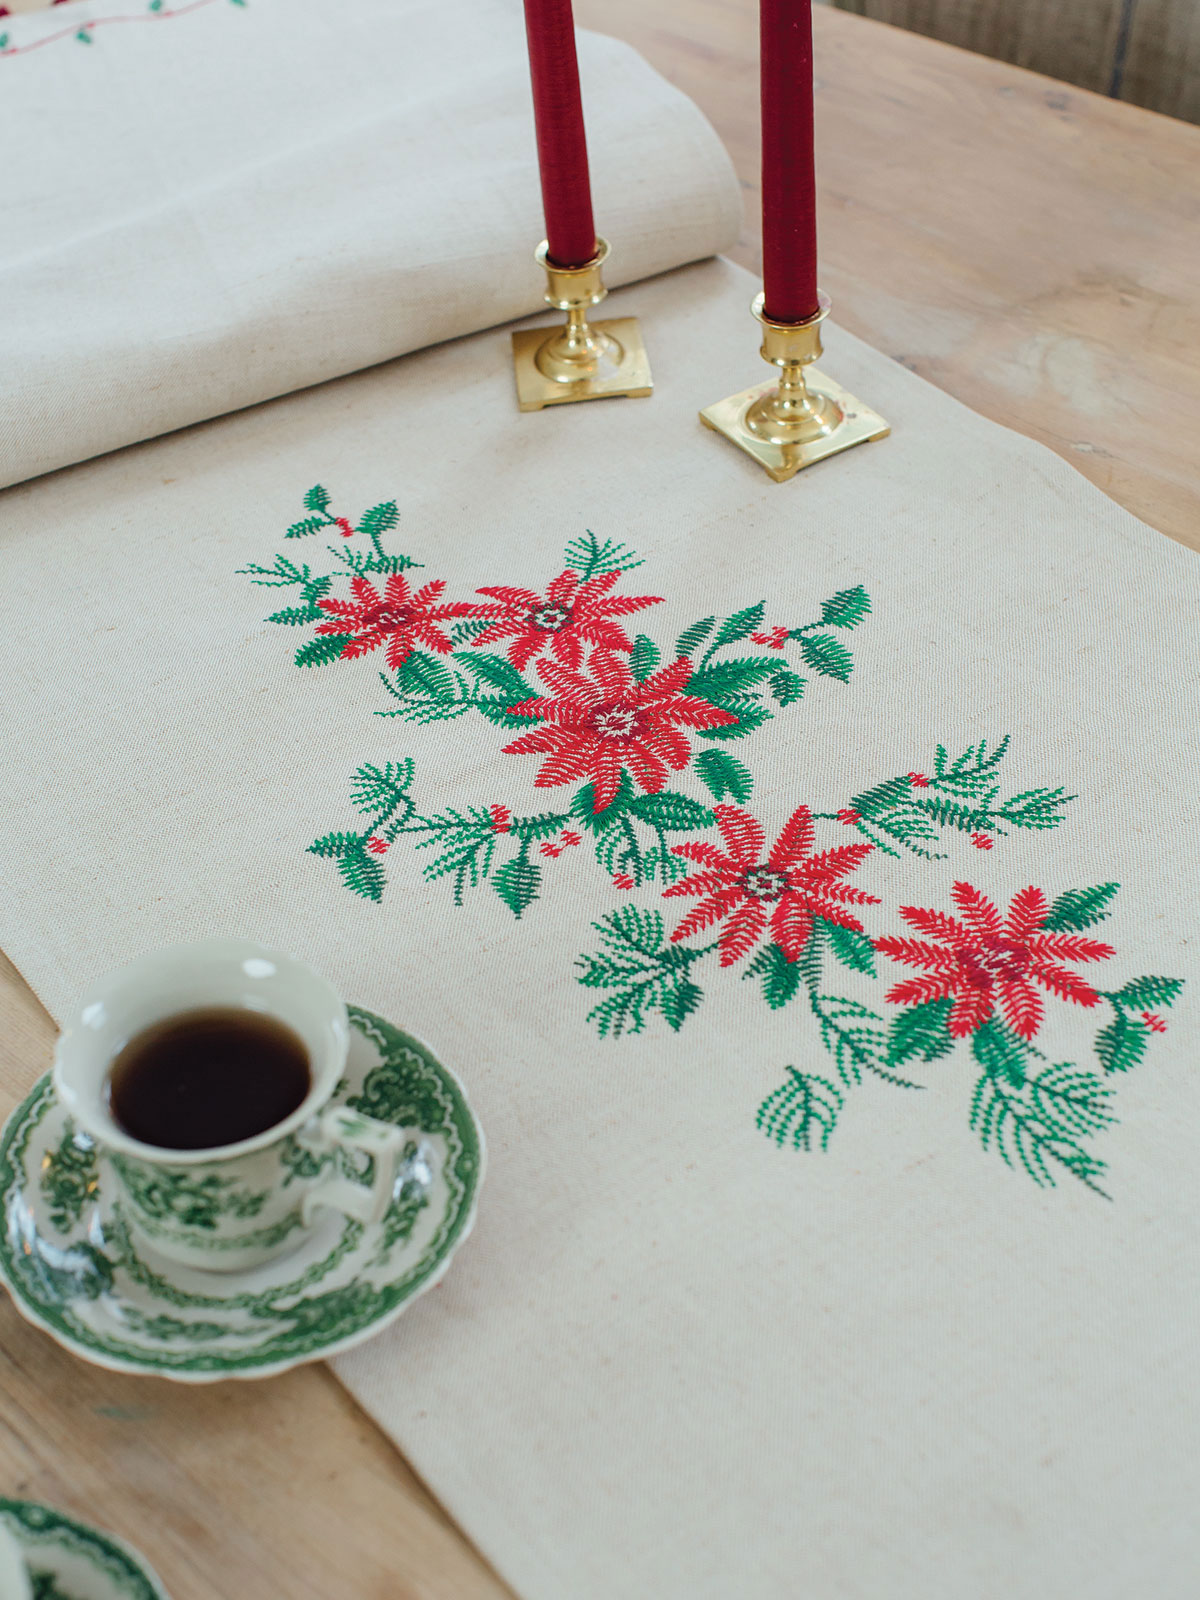 Yuletide Embroidered Runner